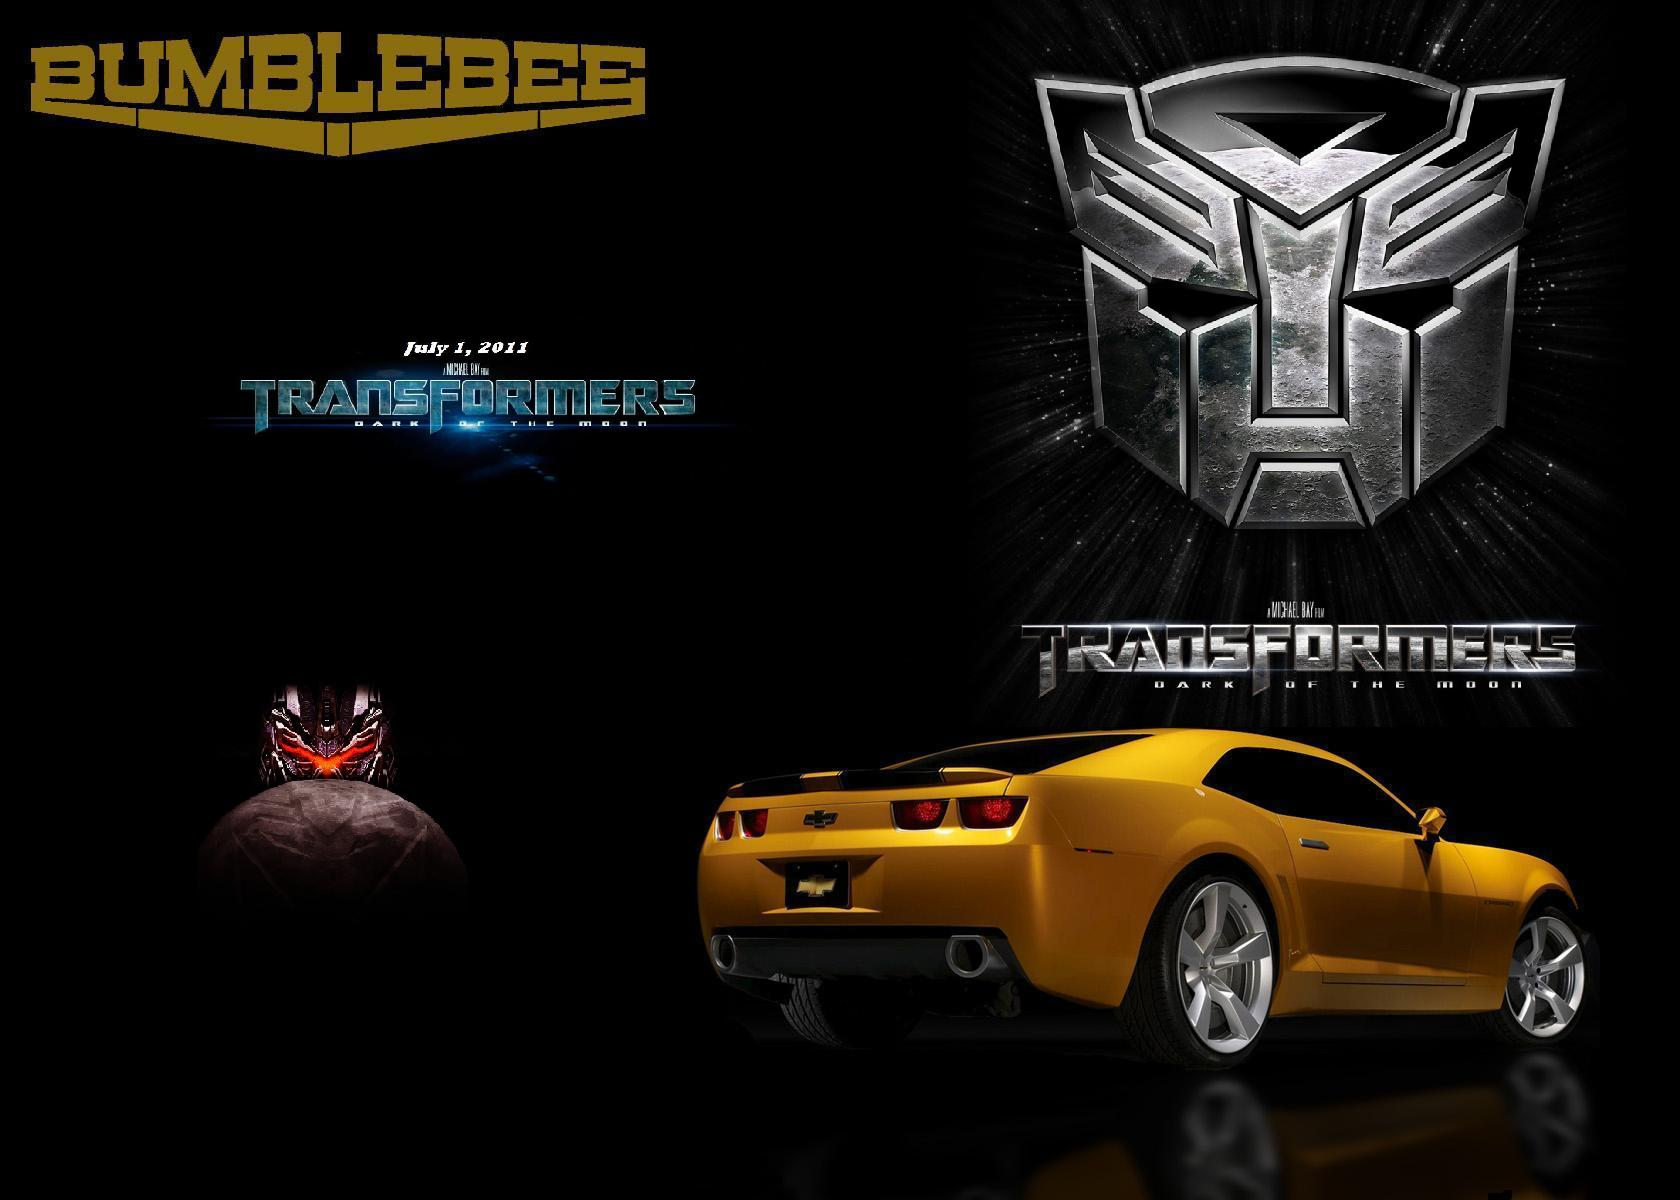 Transformers Hot New Movies Cars Photo 25784300 Fanpop